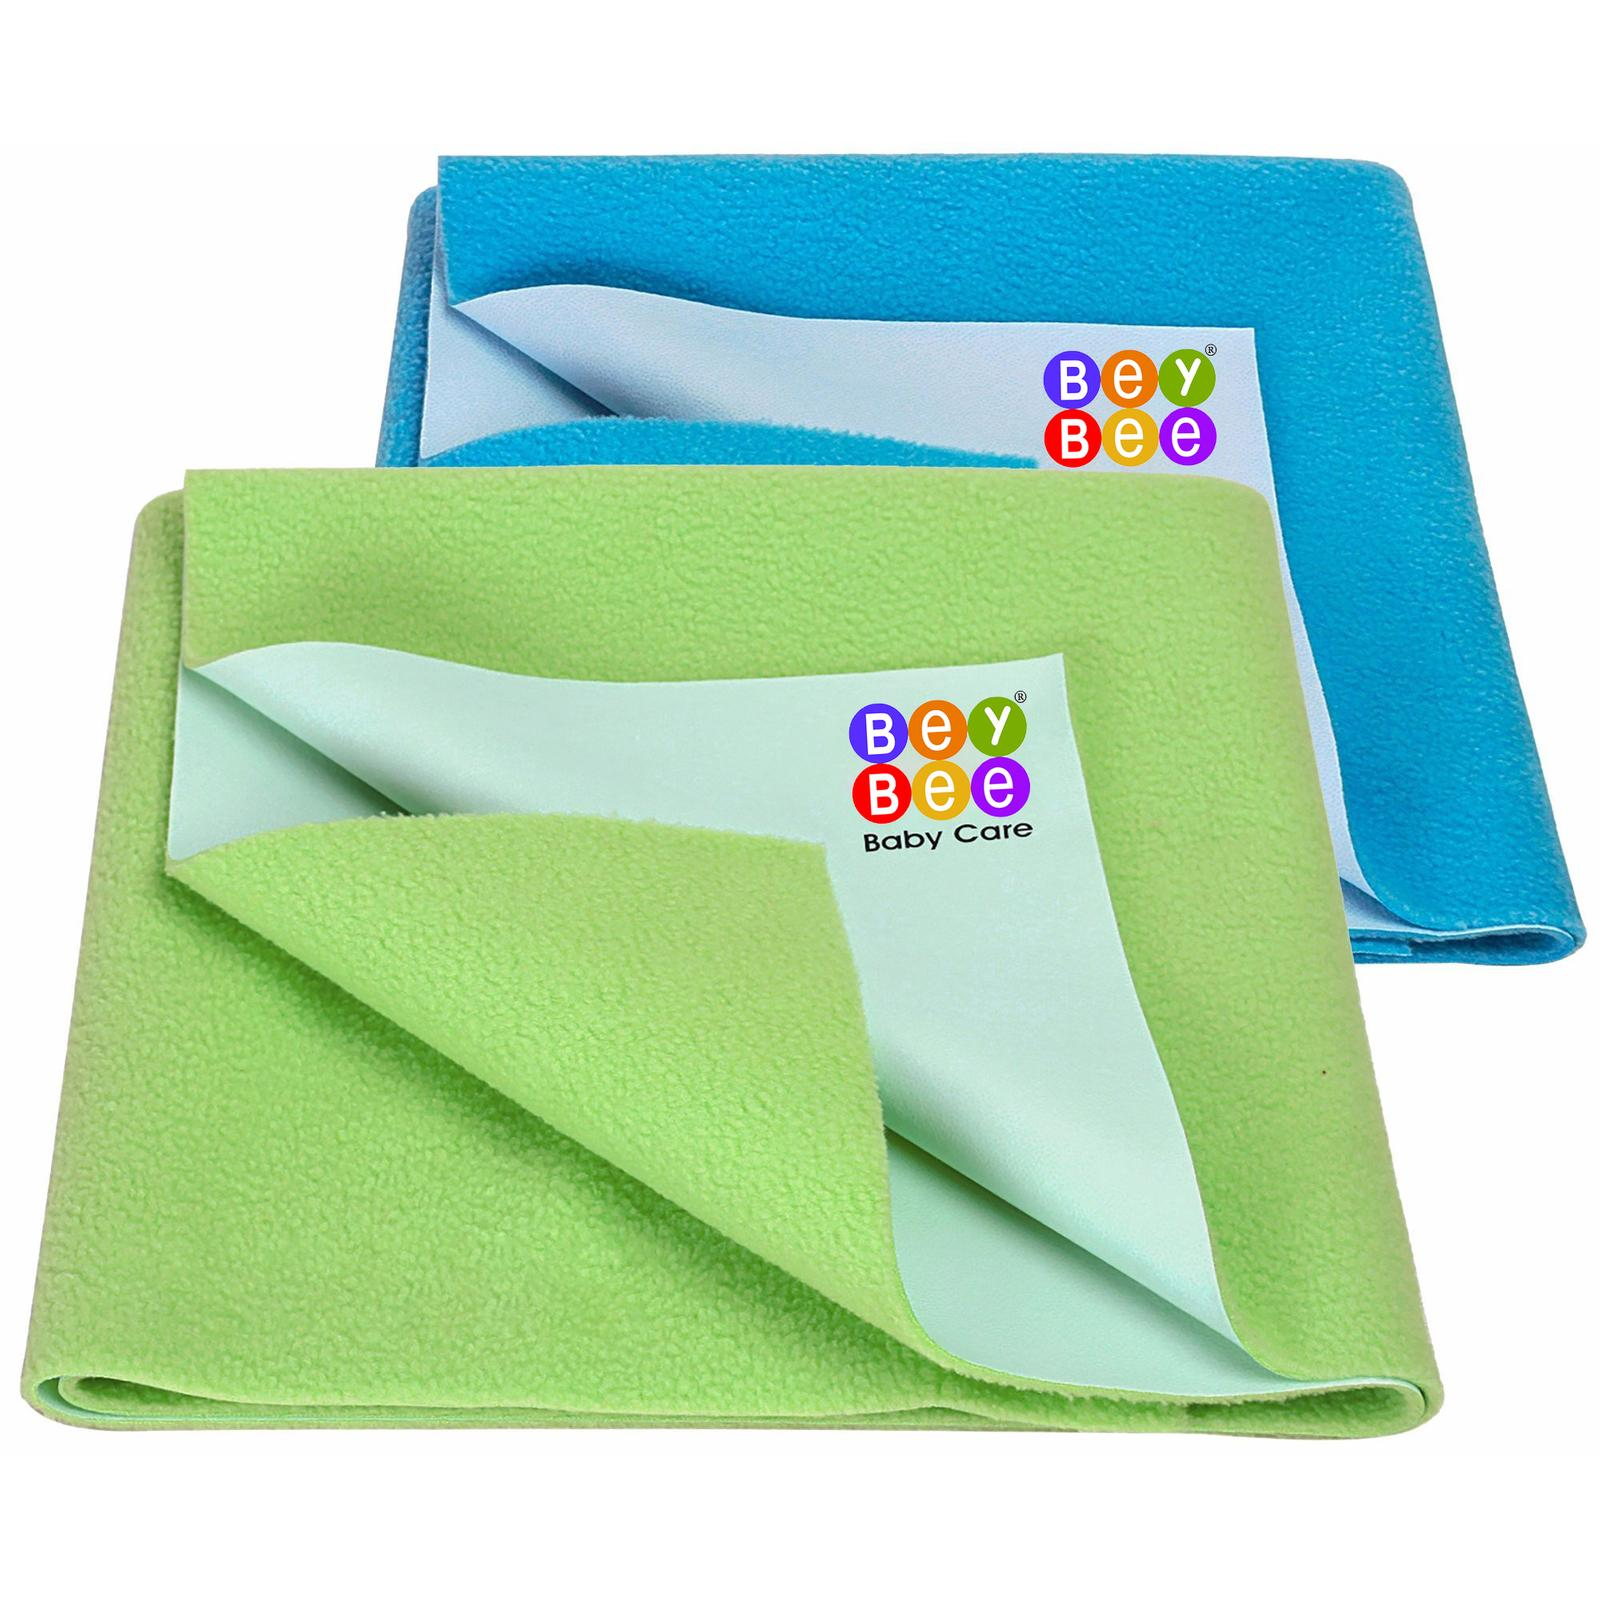 BeyBee Waterproof Baby Bed Protector Dry Sheet for New Born Babies Gifts Pack, (Medium Combo of 2, Light Green/Firoza)